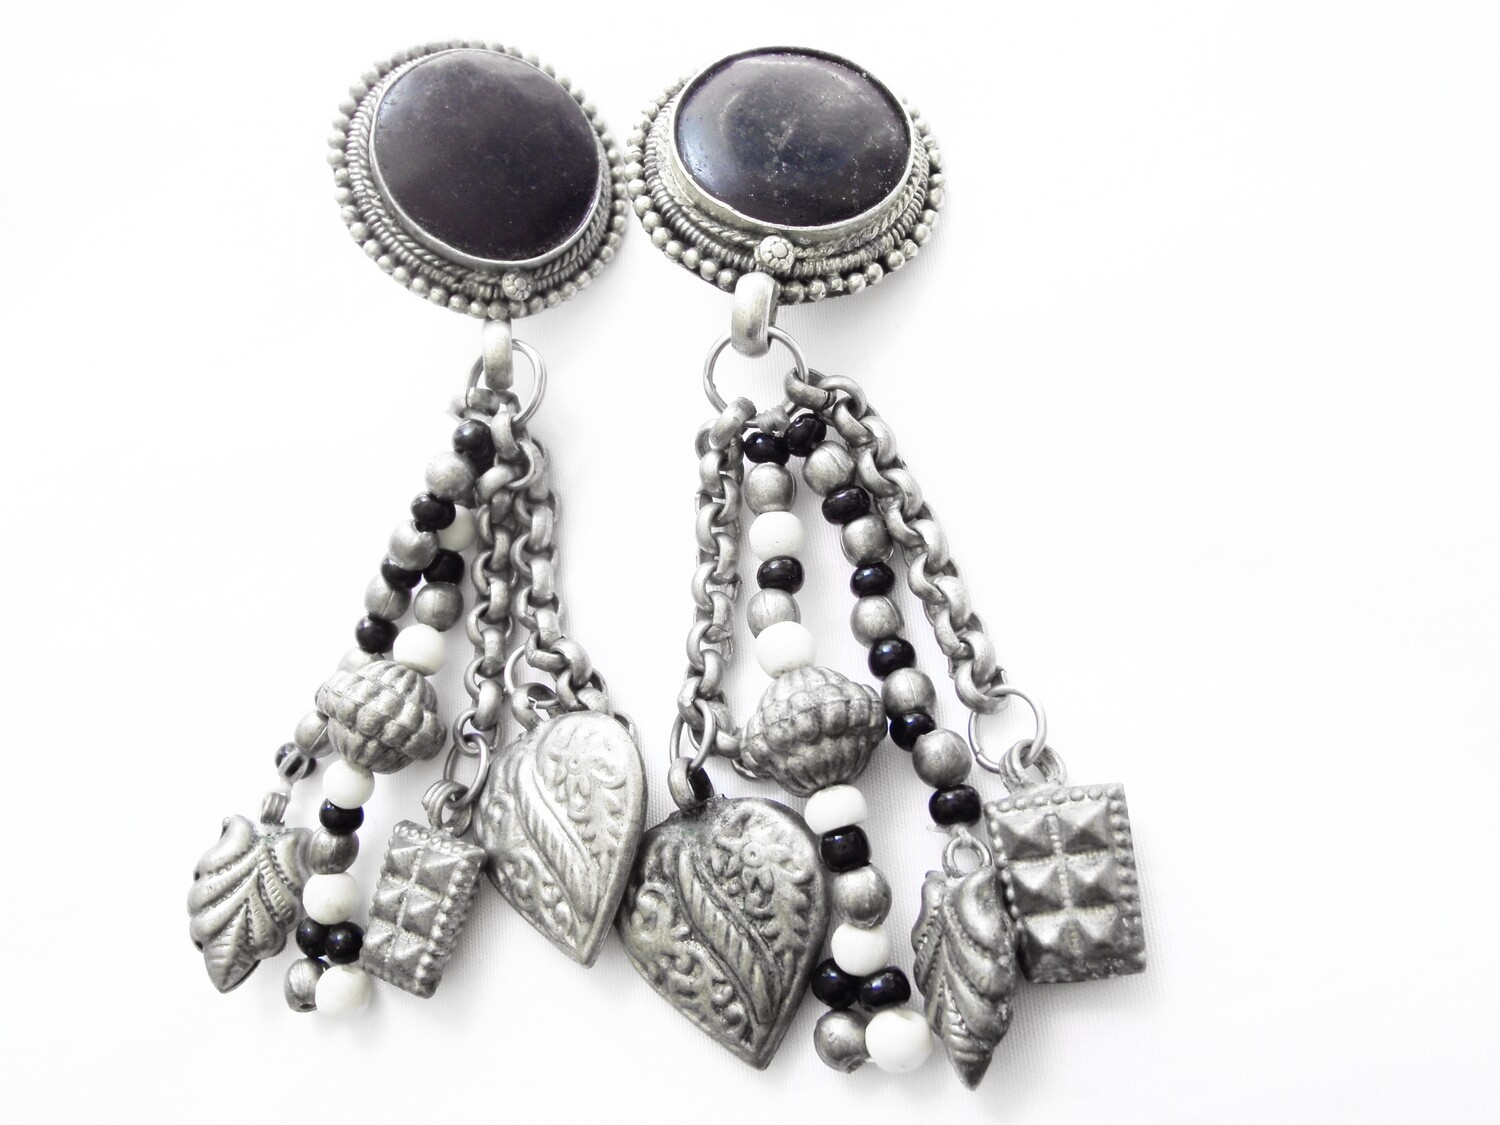 Vintage Obsidian Boho Hippie Clip On Earrings